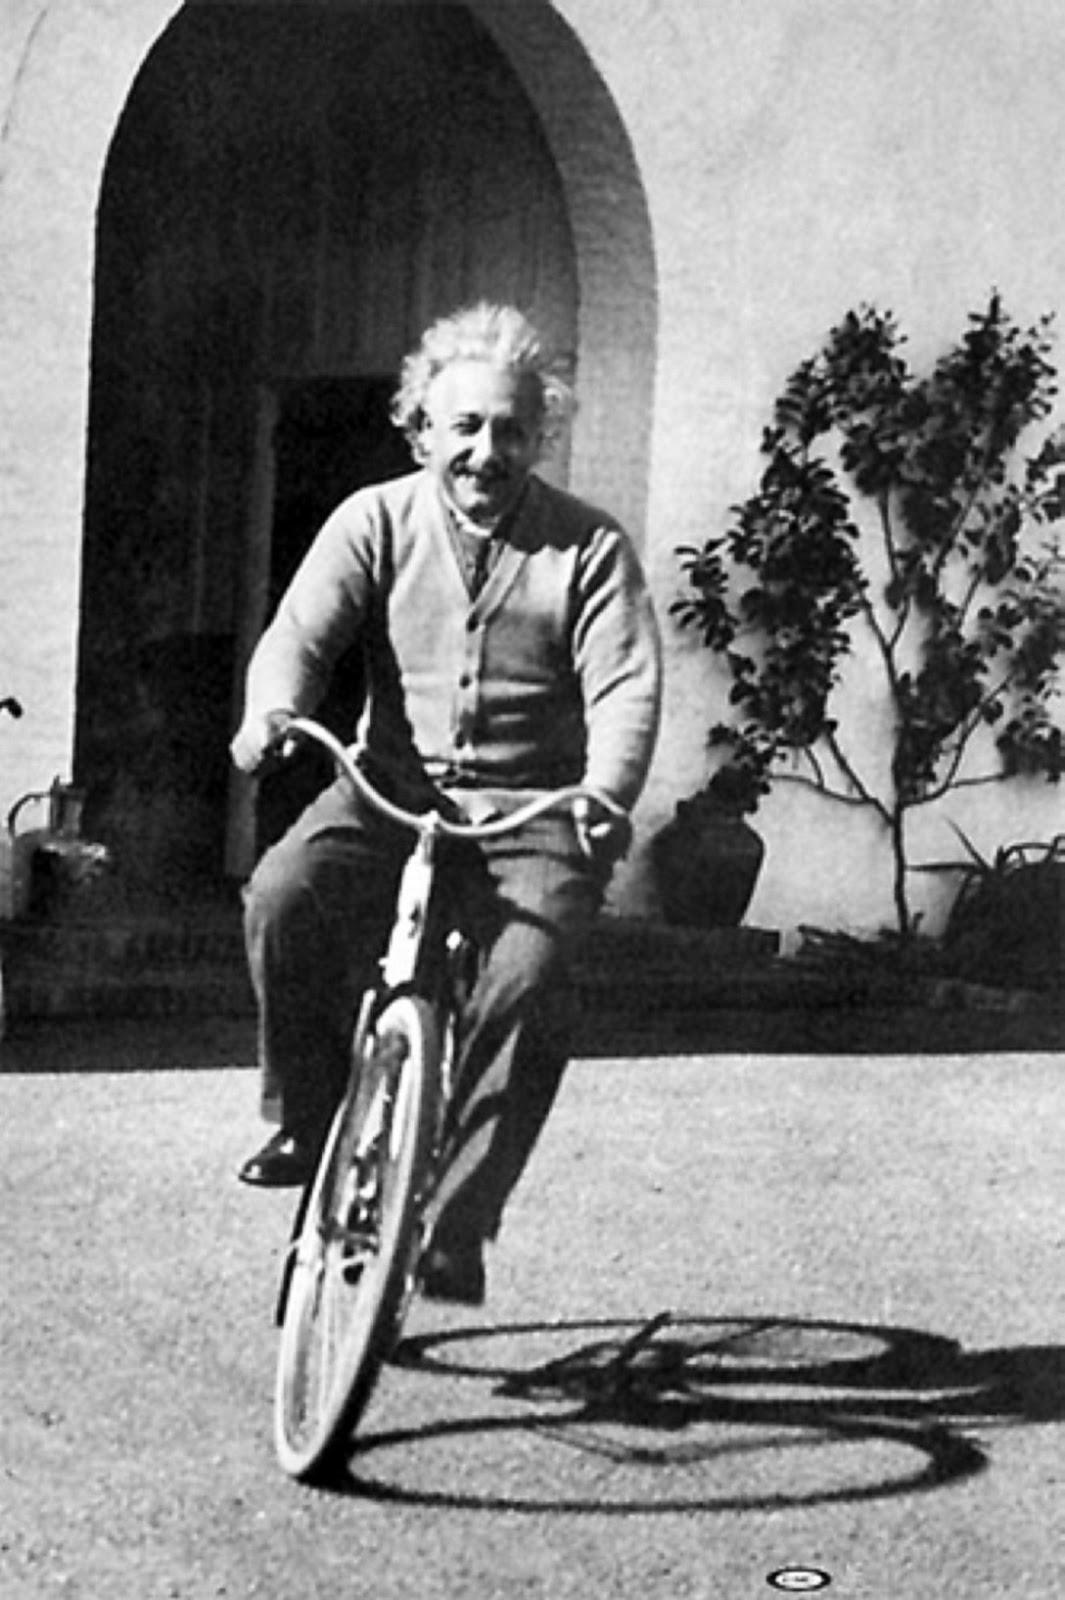 Albert Einstein Riding Bicycle, 1933 | Vintage News Daily